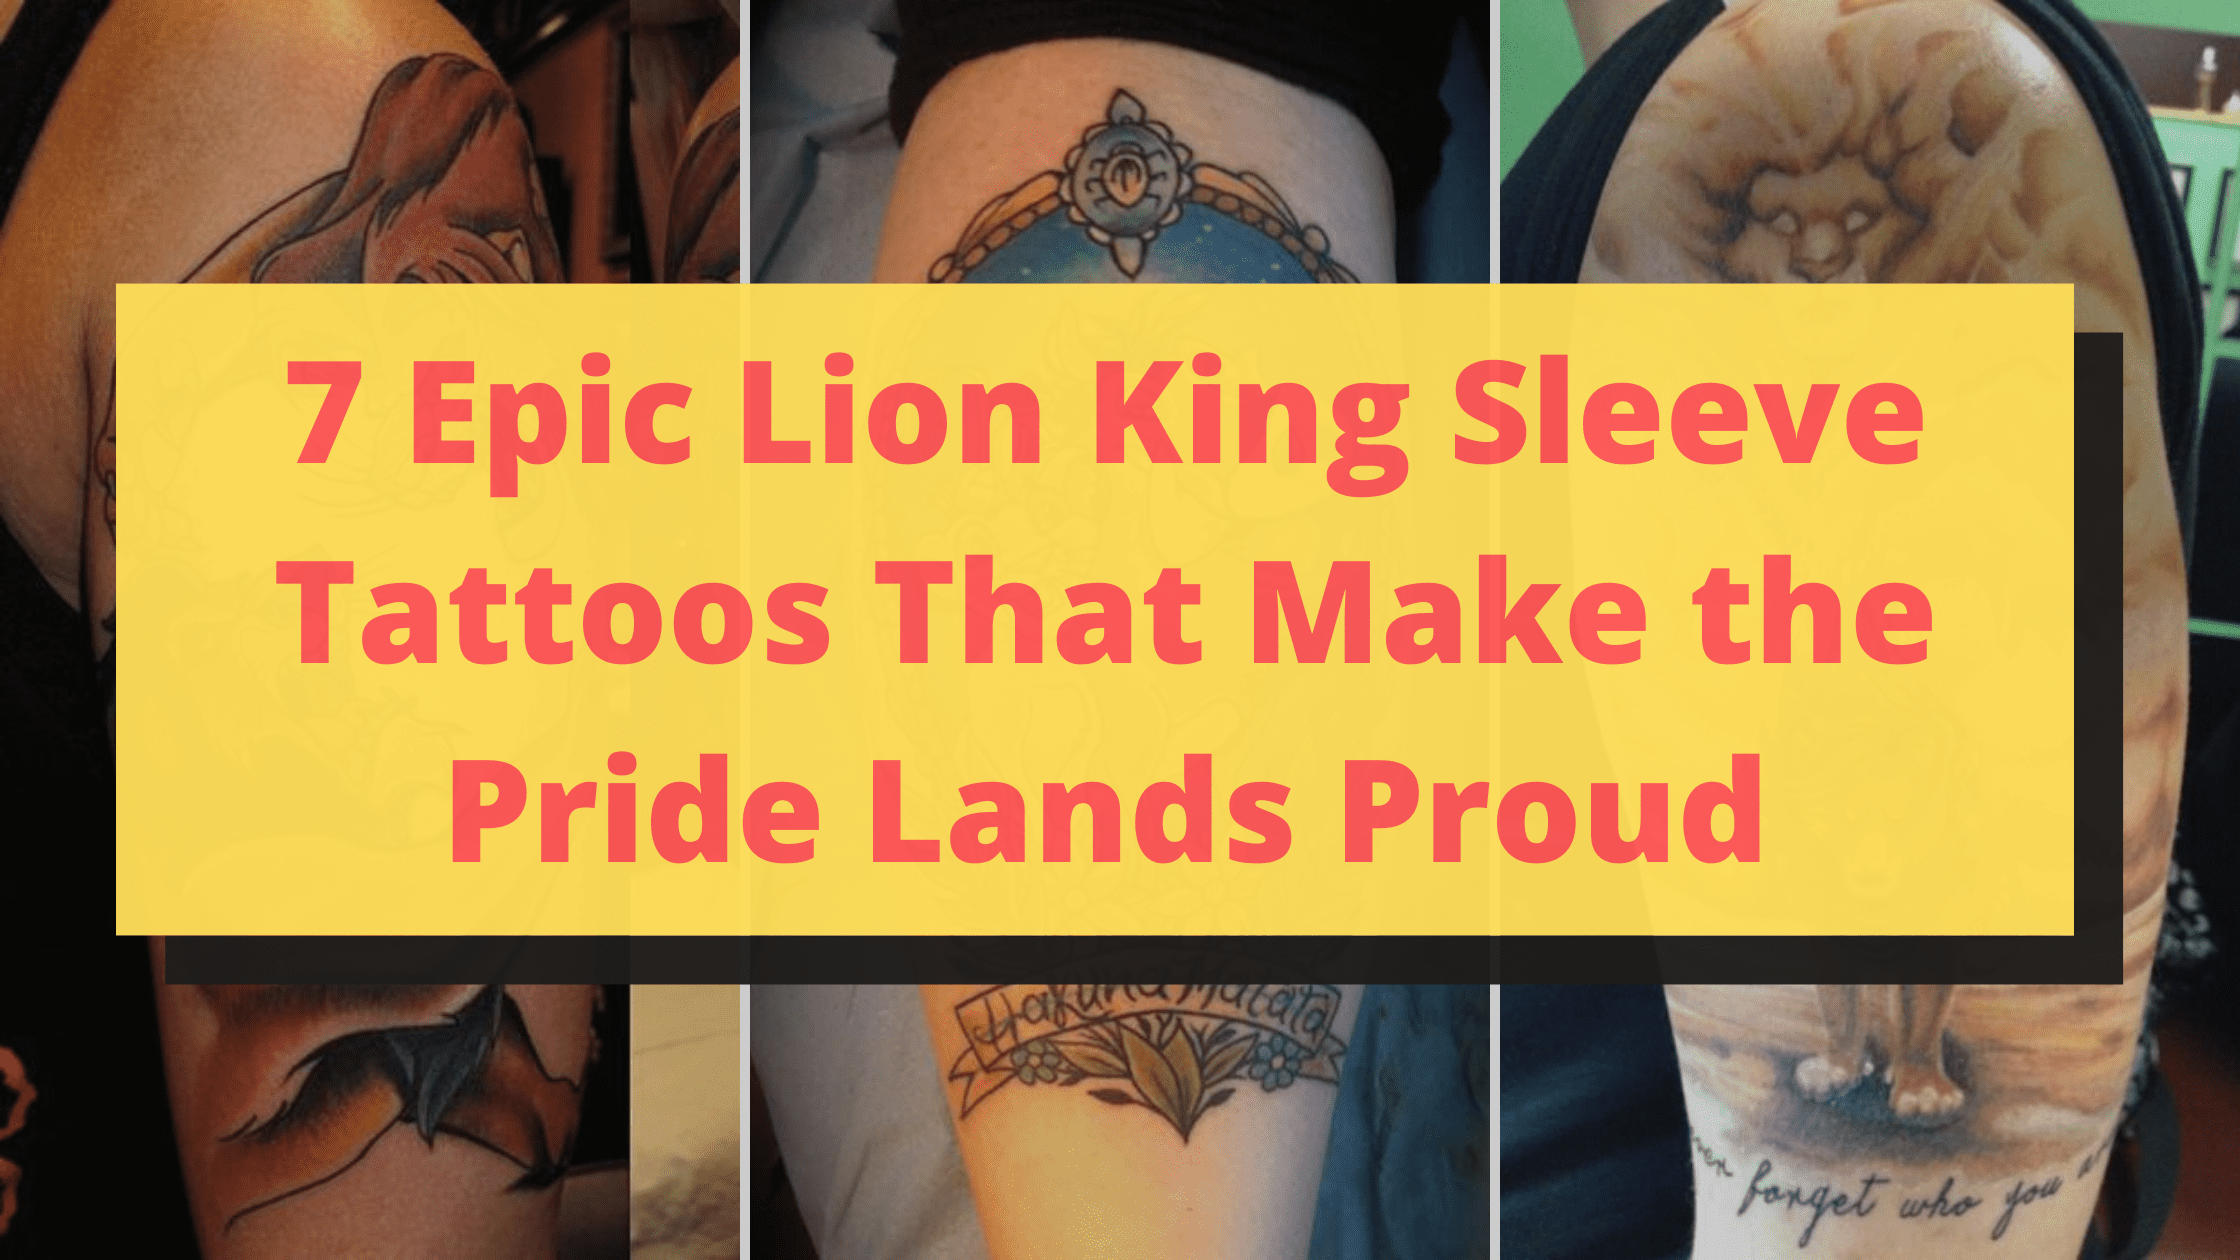 7 Epic Lion King Sleeve Tattoos That Make the Pride Lands Proud